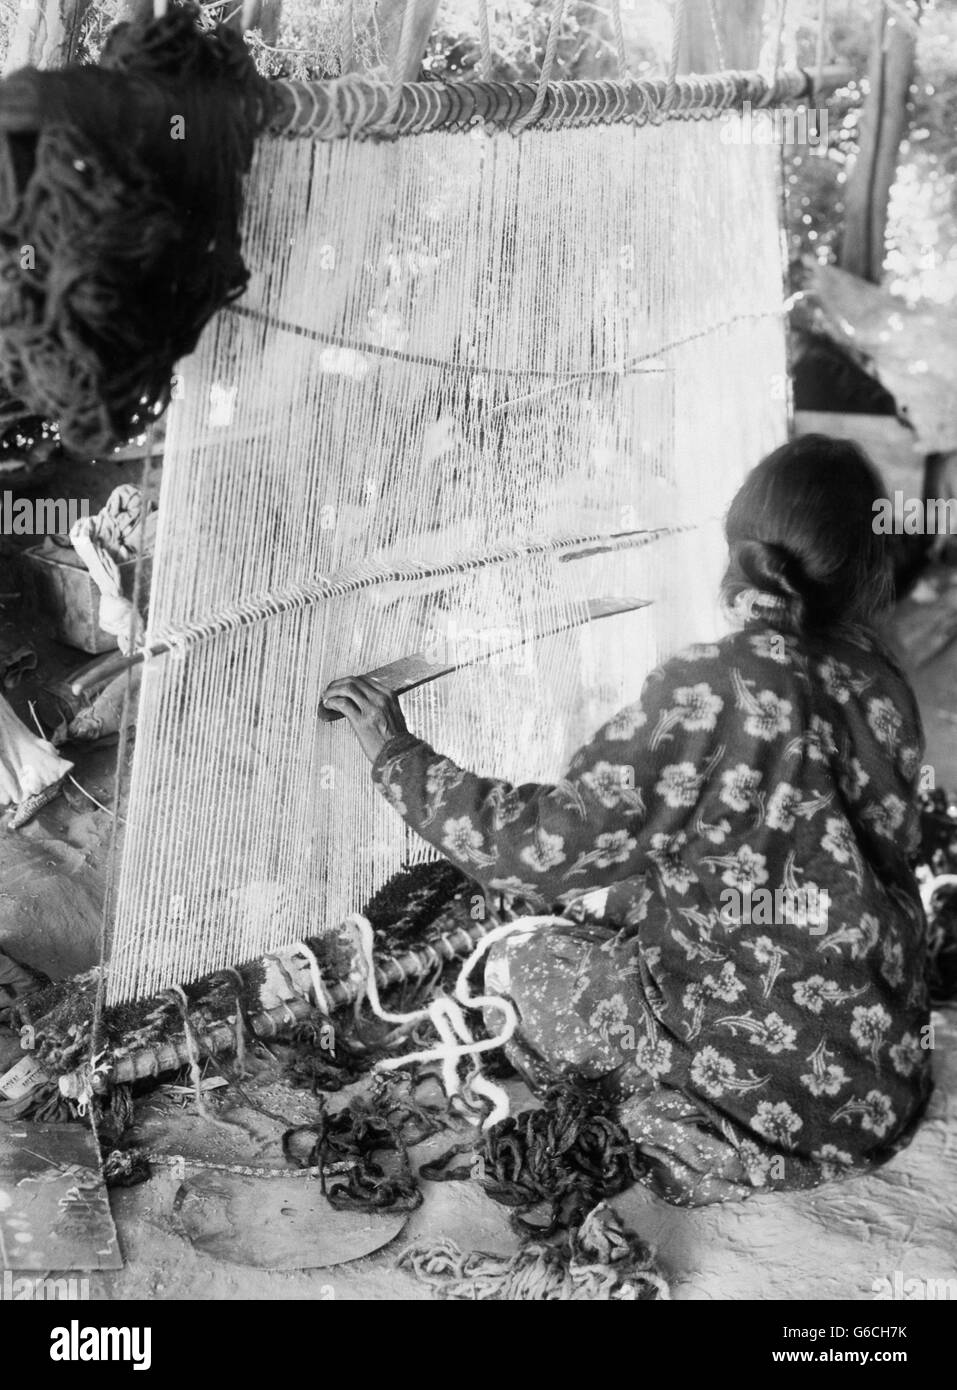 1890s NATIVE AMERICAN INDIAN NAVAJO WOMAN WEAVING CLOTH RUG ON LOOM - Stock Image